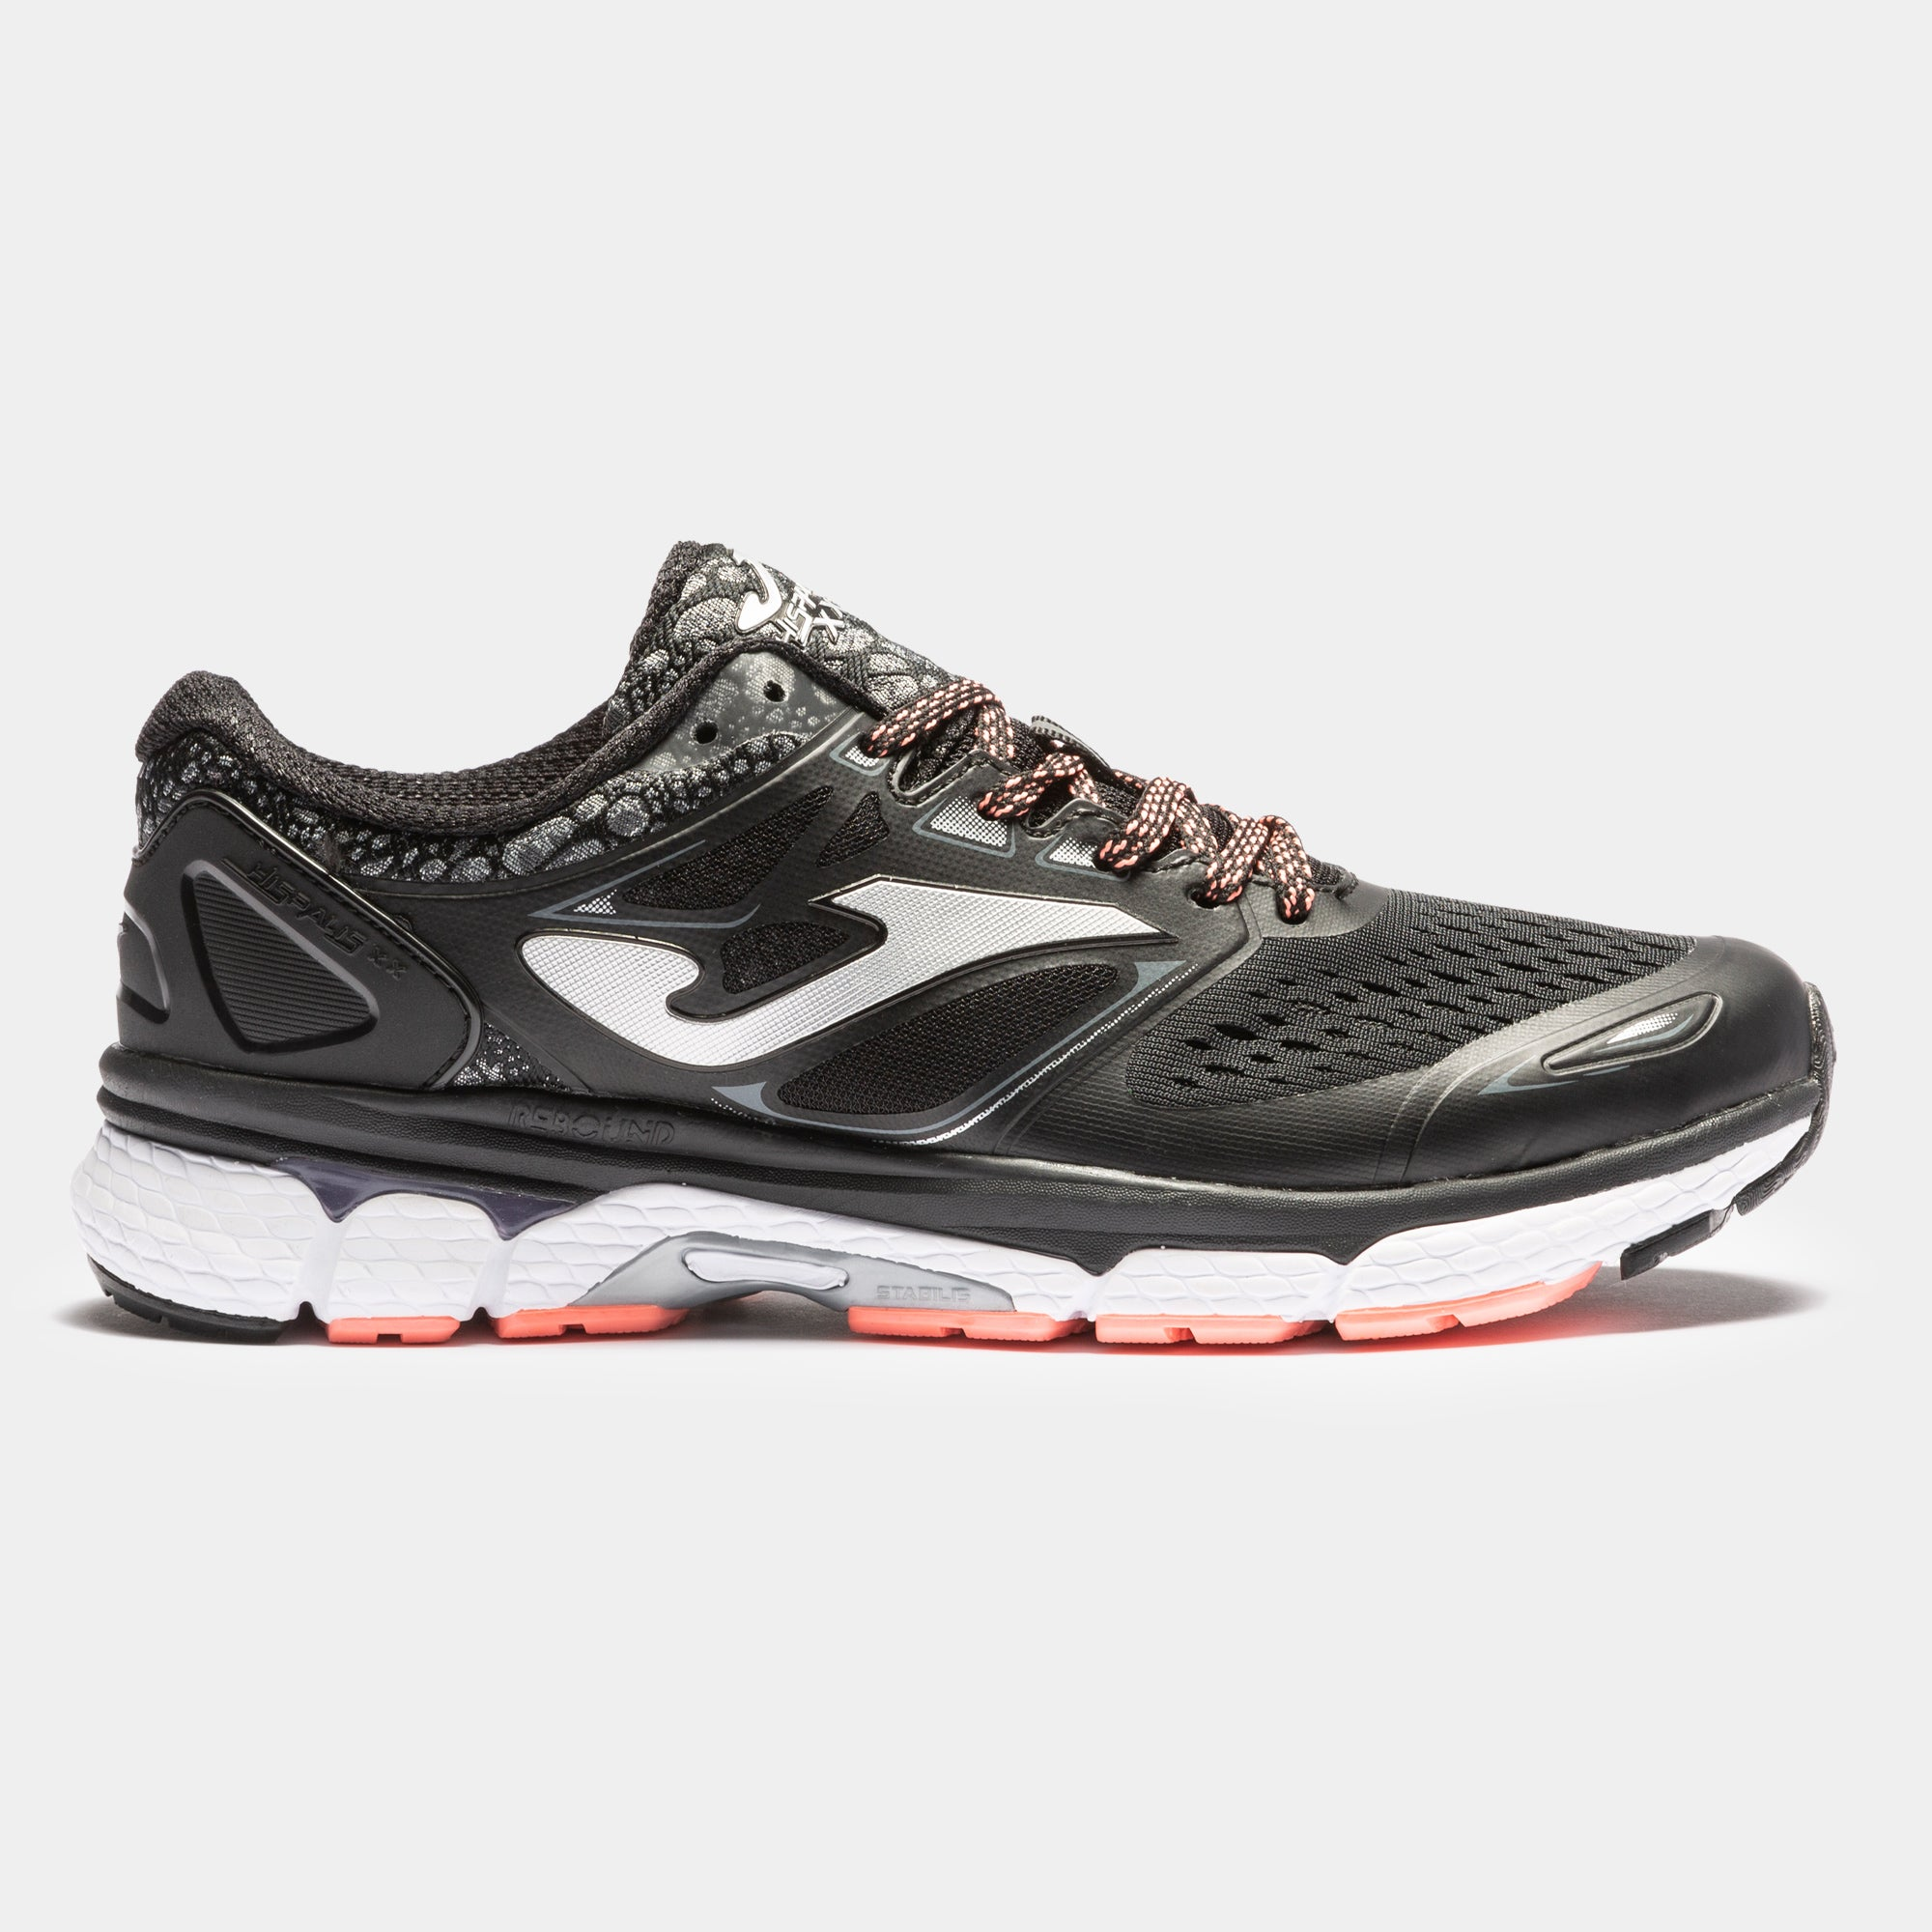 Scarpa Running R.Hispalis Lady. 901 Black